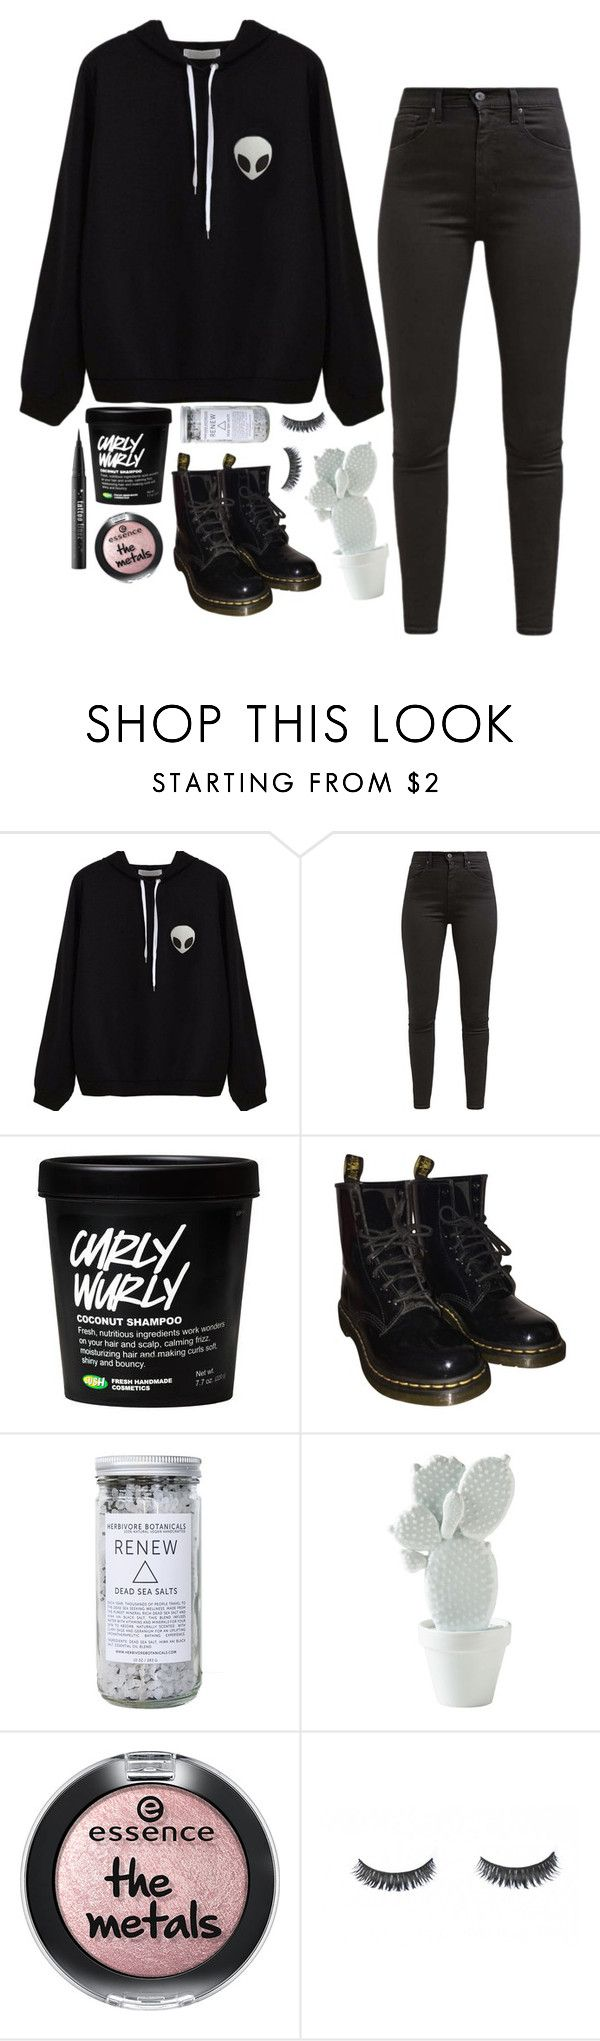 """Untitled #506"" by lethargicbea ❤ liked on Polyvore featuring Levi's, Dr. Martens, Herbivore and Kat Von D"